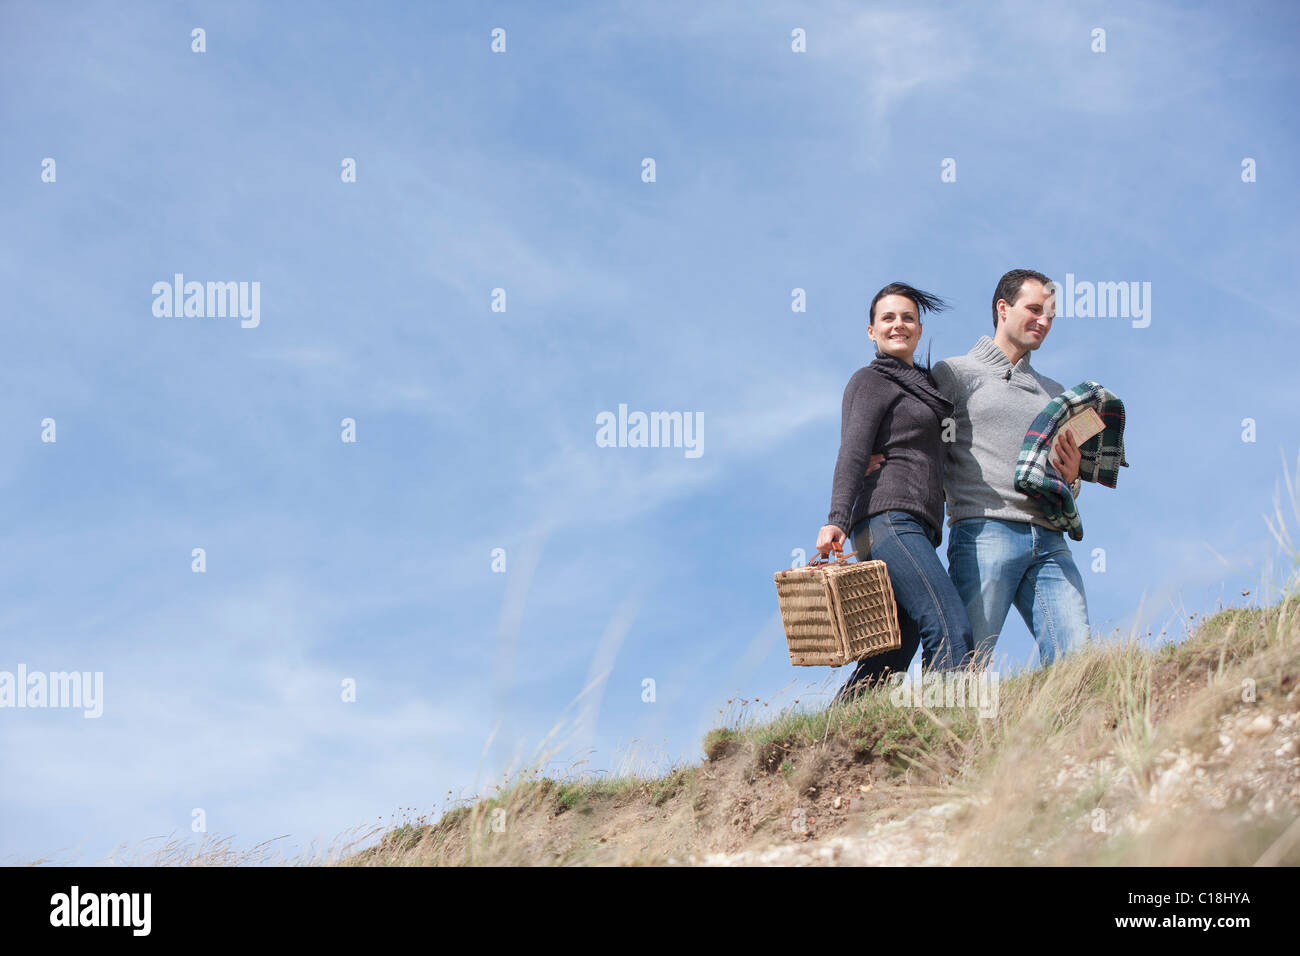 Couple taking a stroll - Stock Image